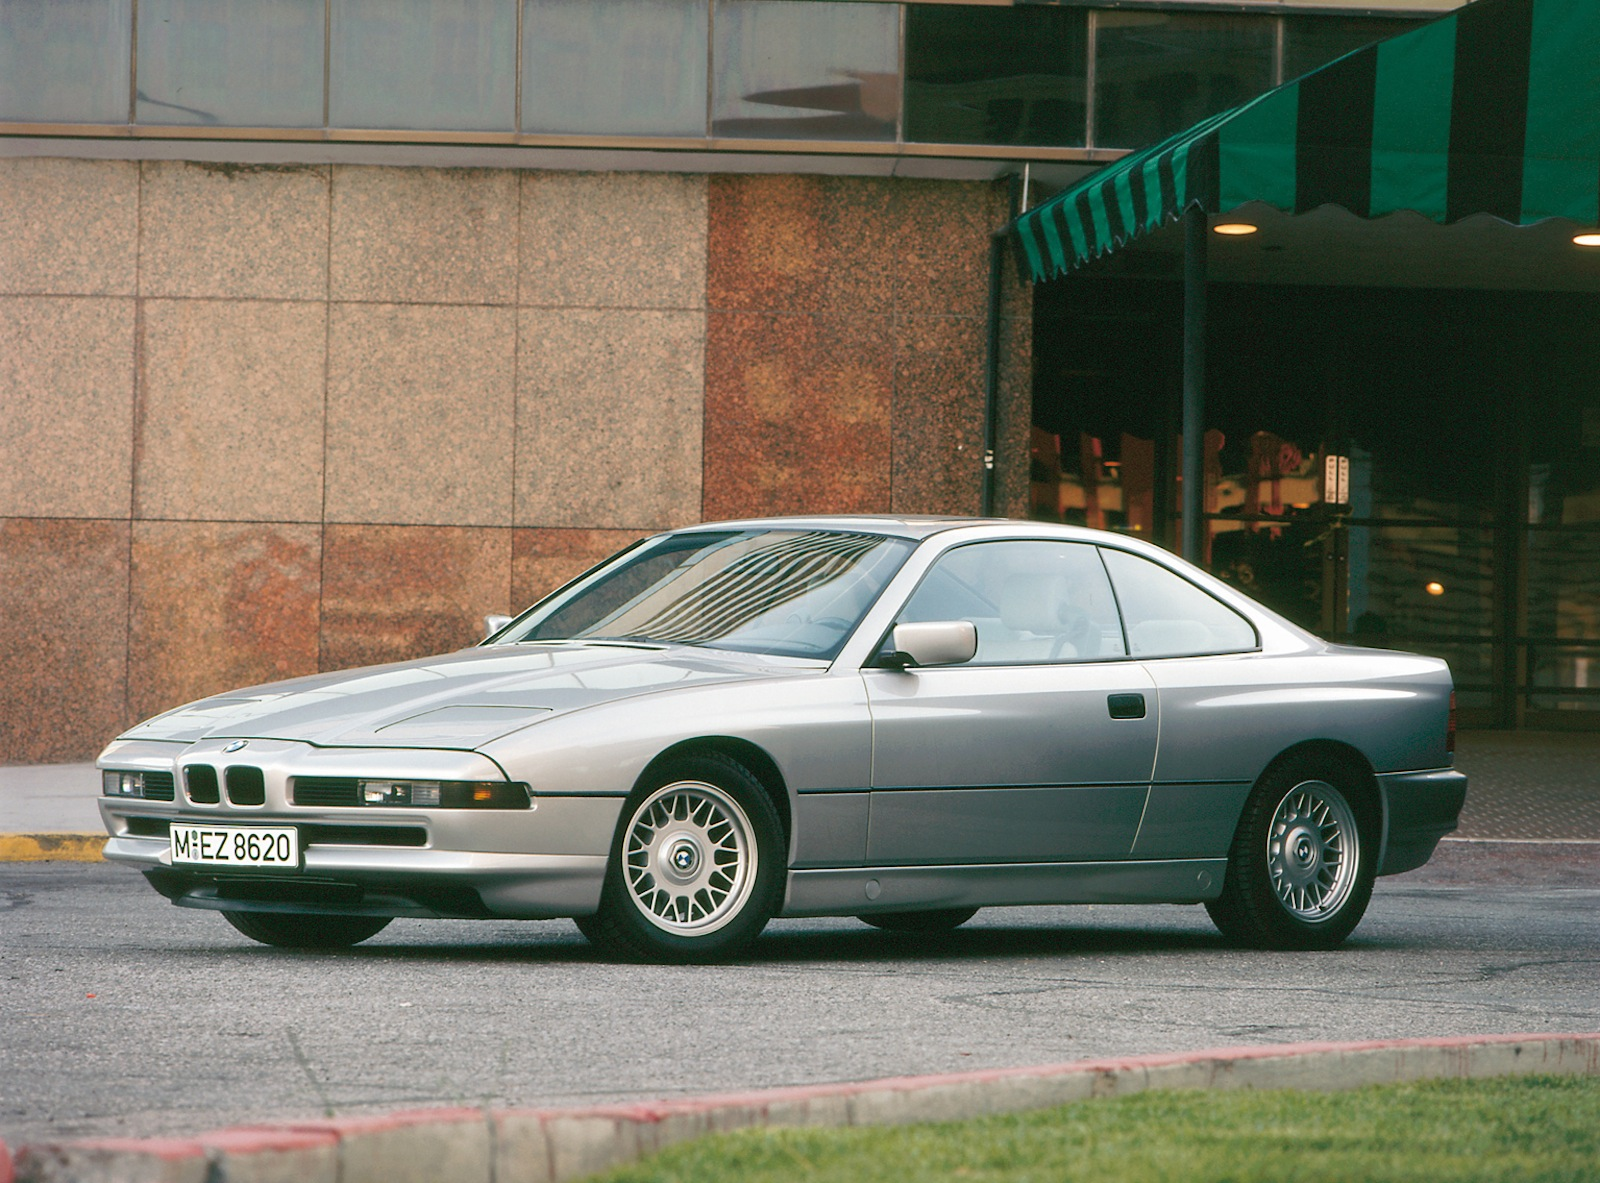 e31 bmw 8 series gr8est german v12 coupe ever. Black Bedroom Furniture Sets. Home Design Ideas